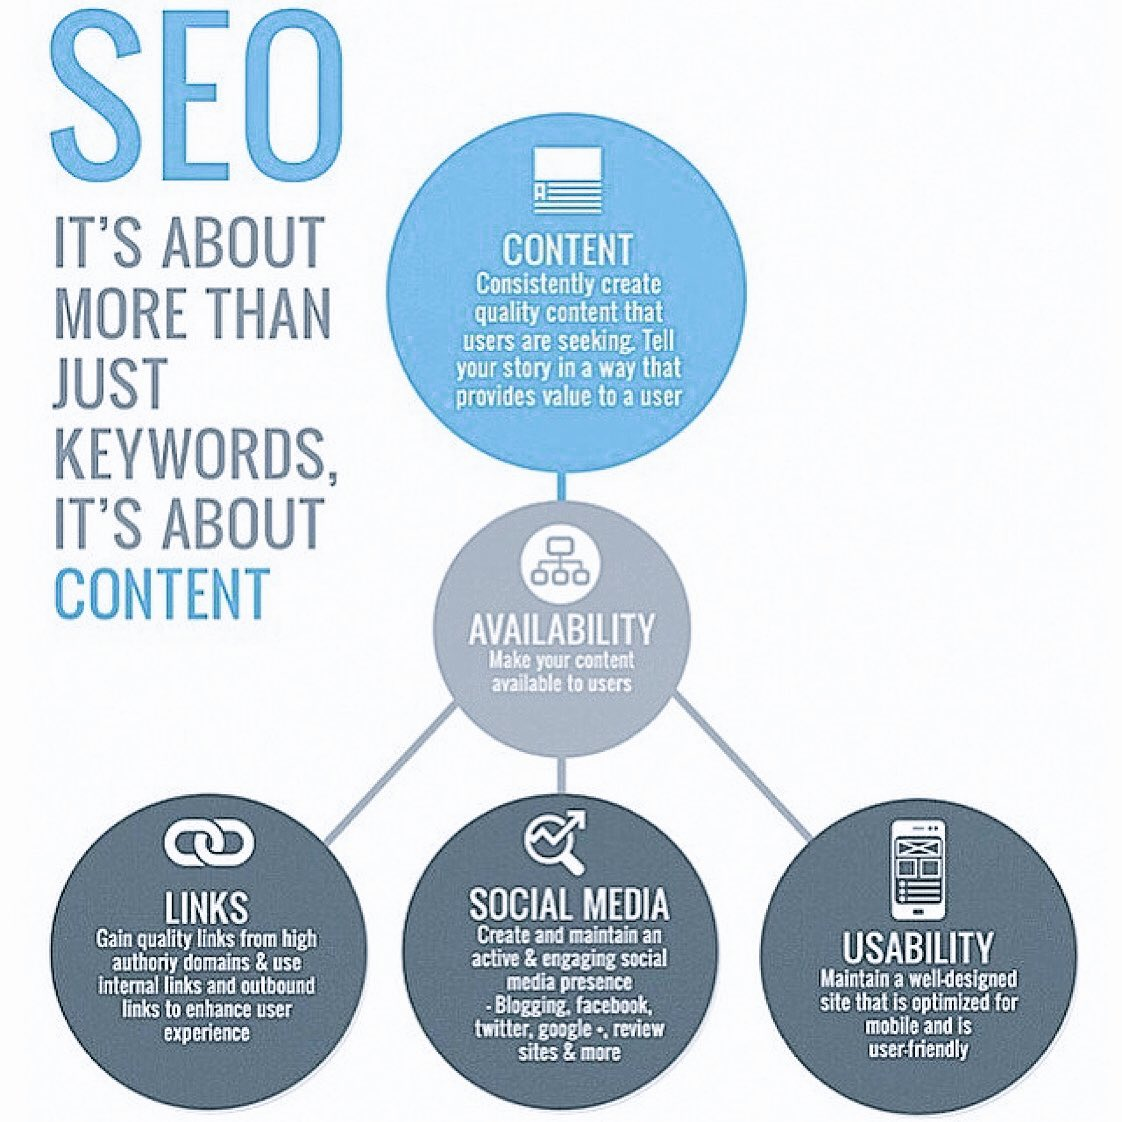 #SEO is about #Content &amp; #Keywords #DigitalMarketing #SMM #Mpgvip #SEM #Marketing #Contentmarketing #Makeyourownlane #GrowthHacking #SPDC<br>http://pic.twitter.com/aEXvtQLEoR